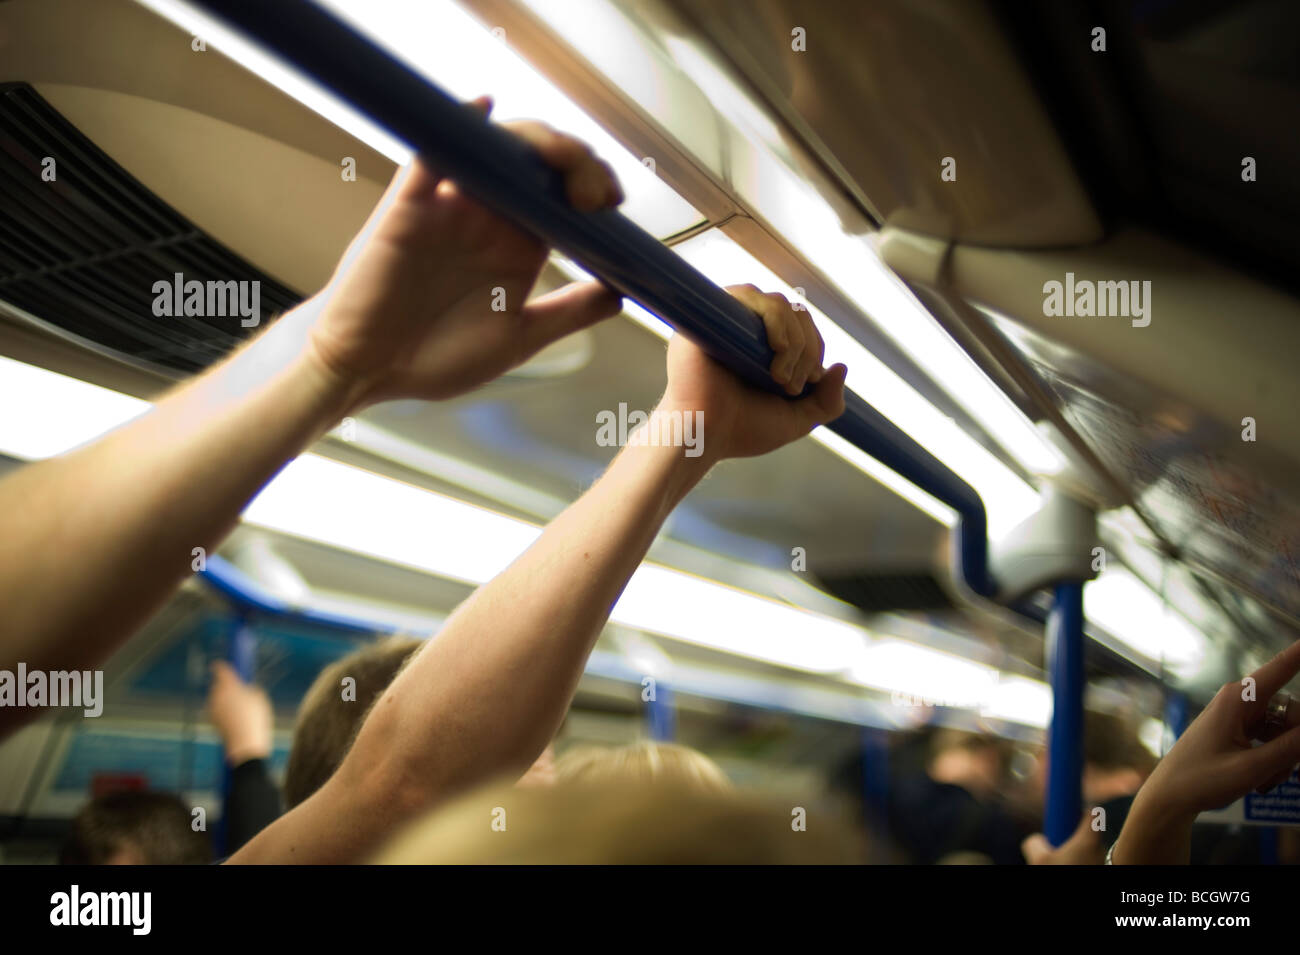 London underground tube comute crush overcrowded travel piccadilly line hot sweat straphanging bodies smell touch - Stock Image